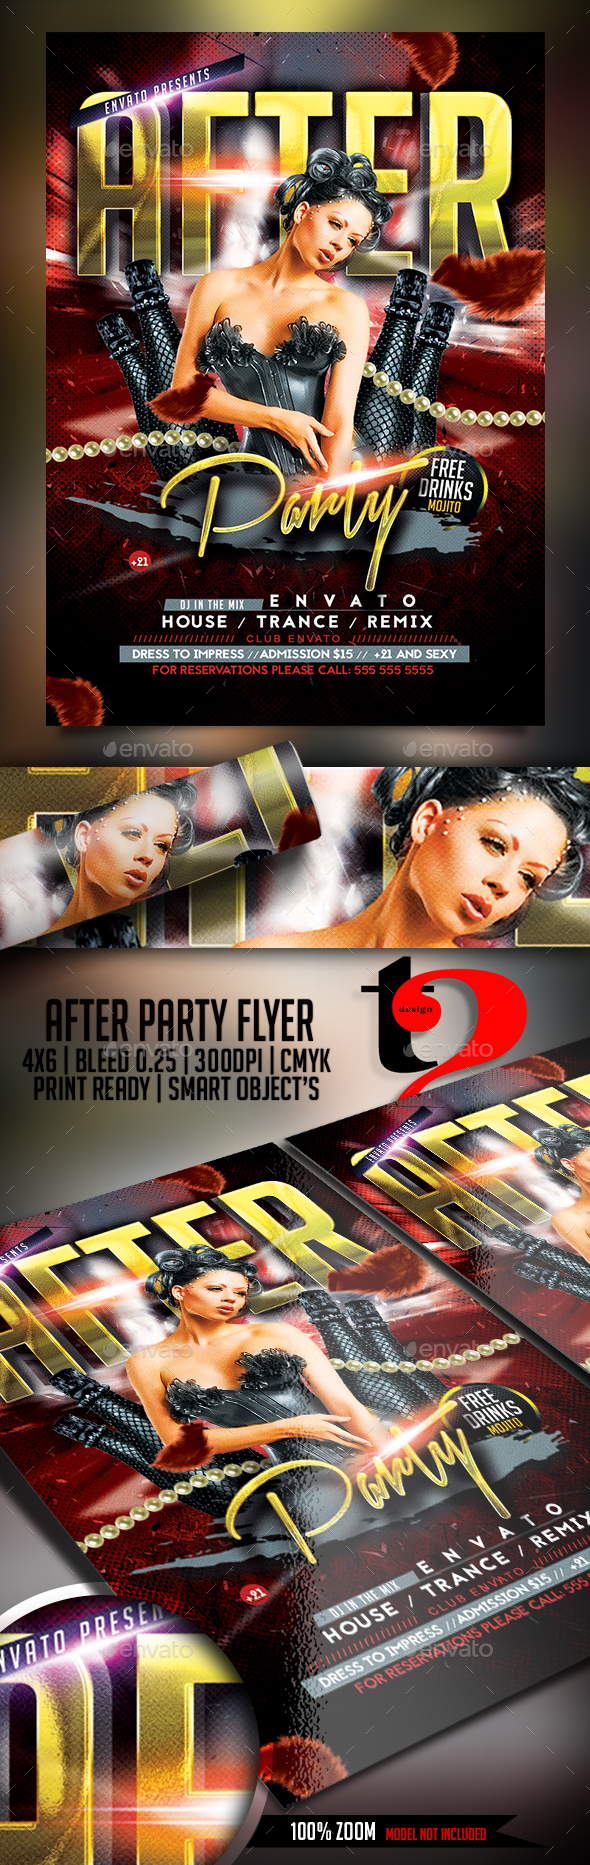 After Party Flyer-Template - Clubs & Parties Events